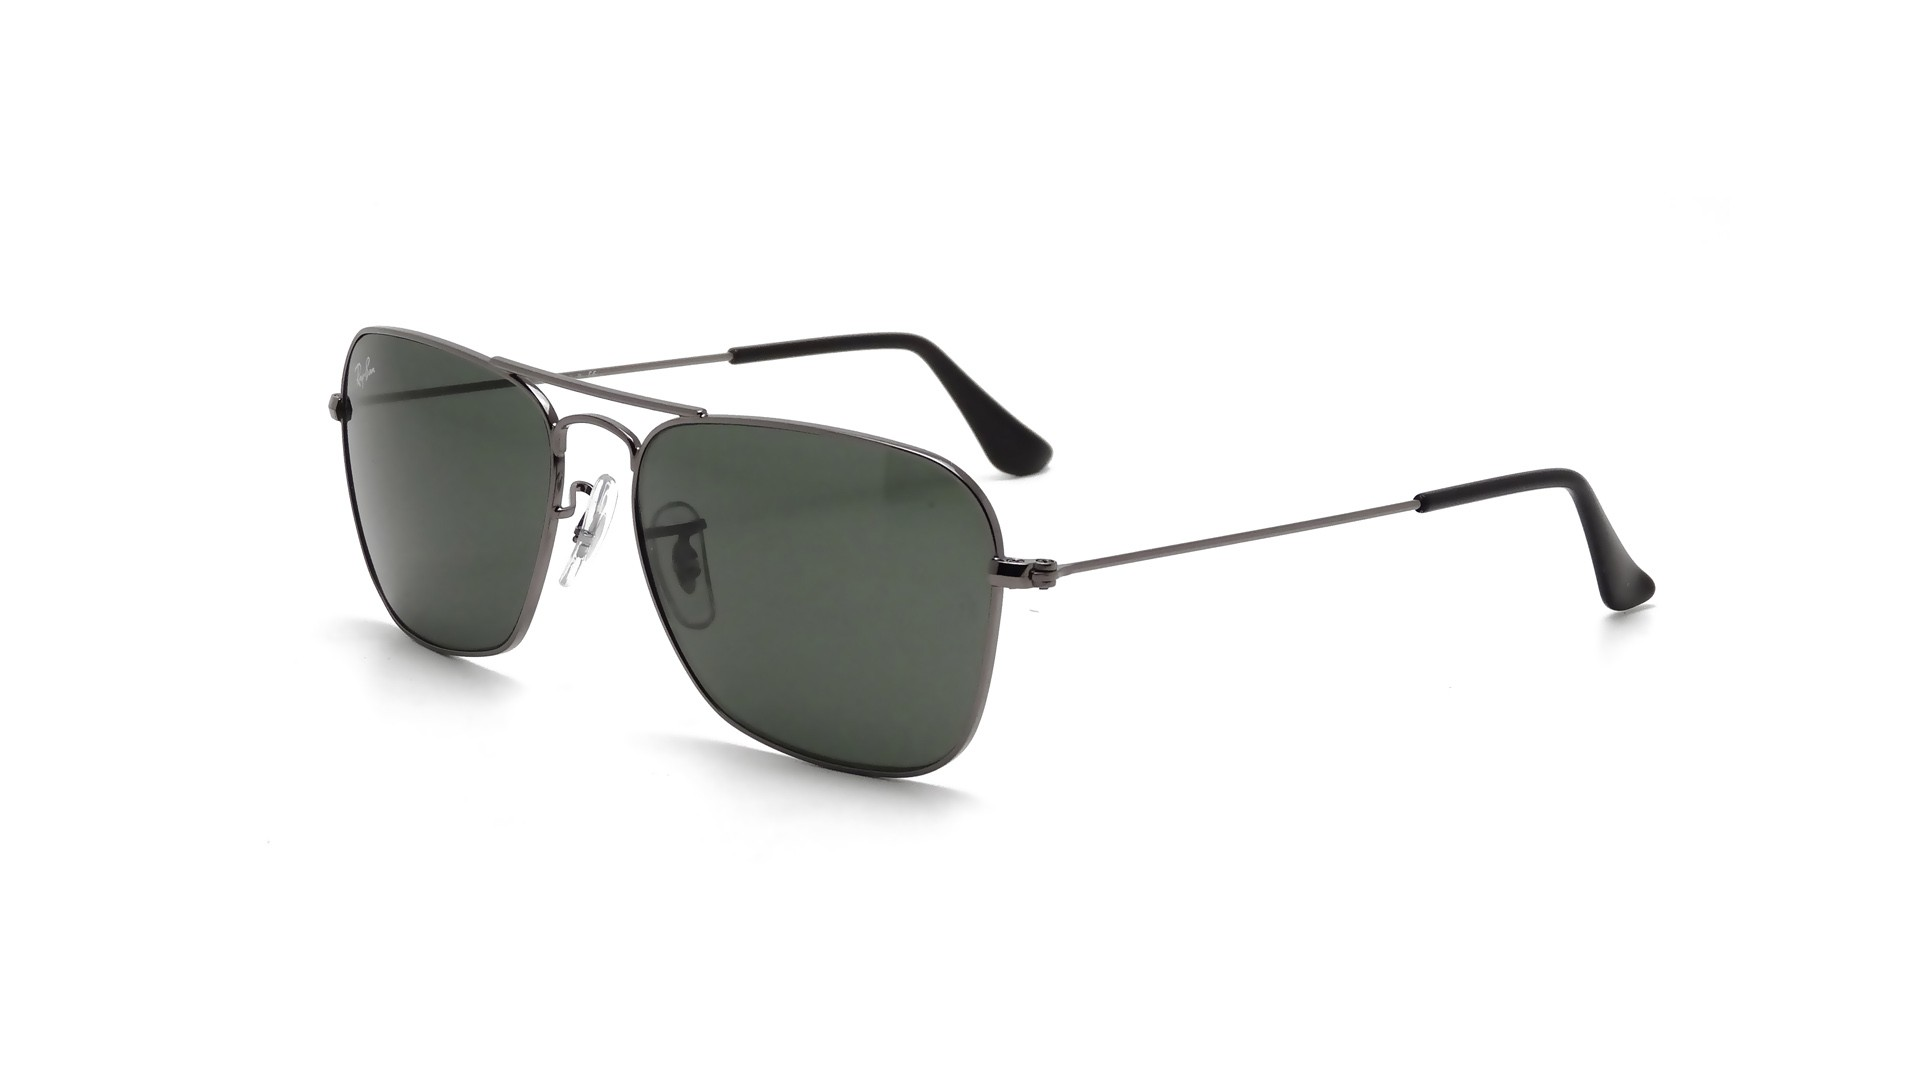 4beeb1eed45 Sunglasses Ray-Ban Caravan Grey RB3136 004 55-15 Medium